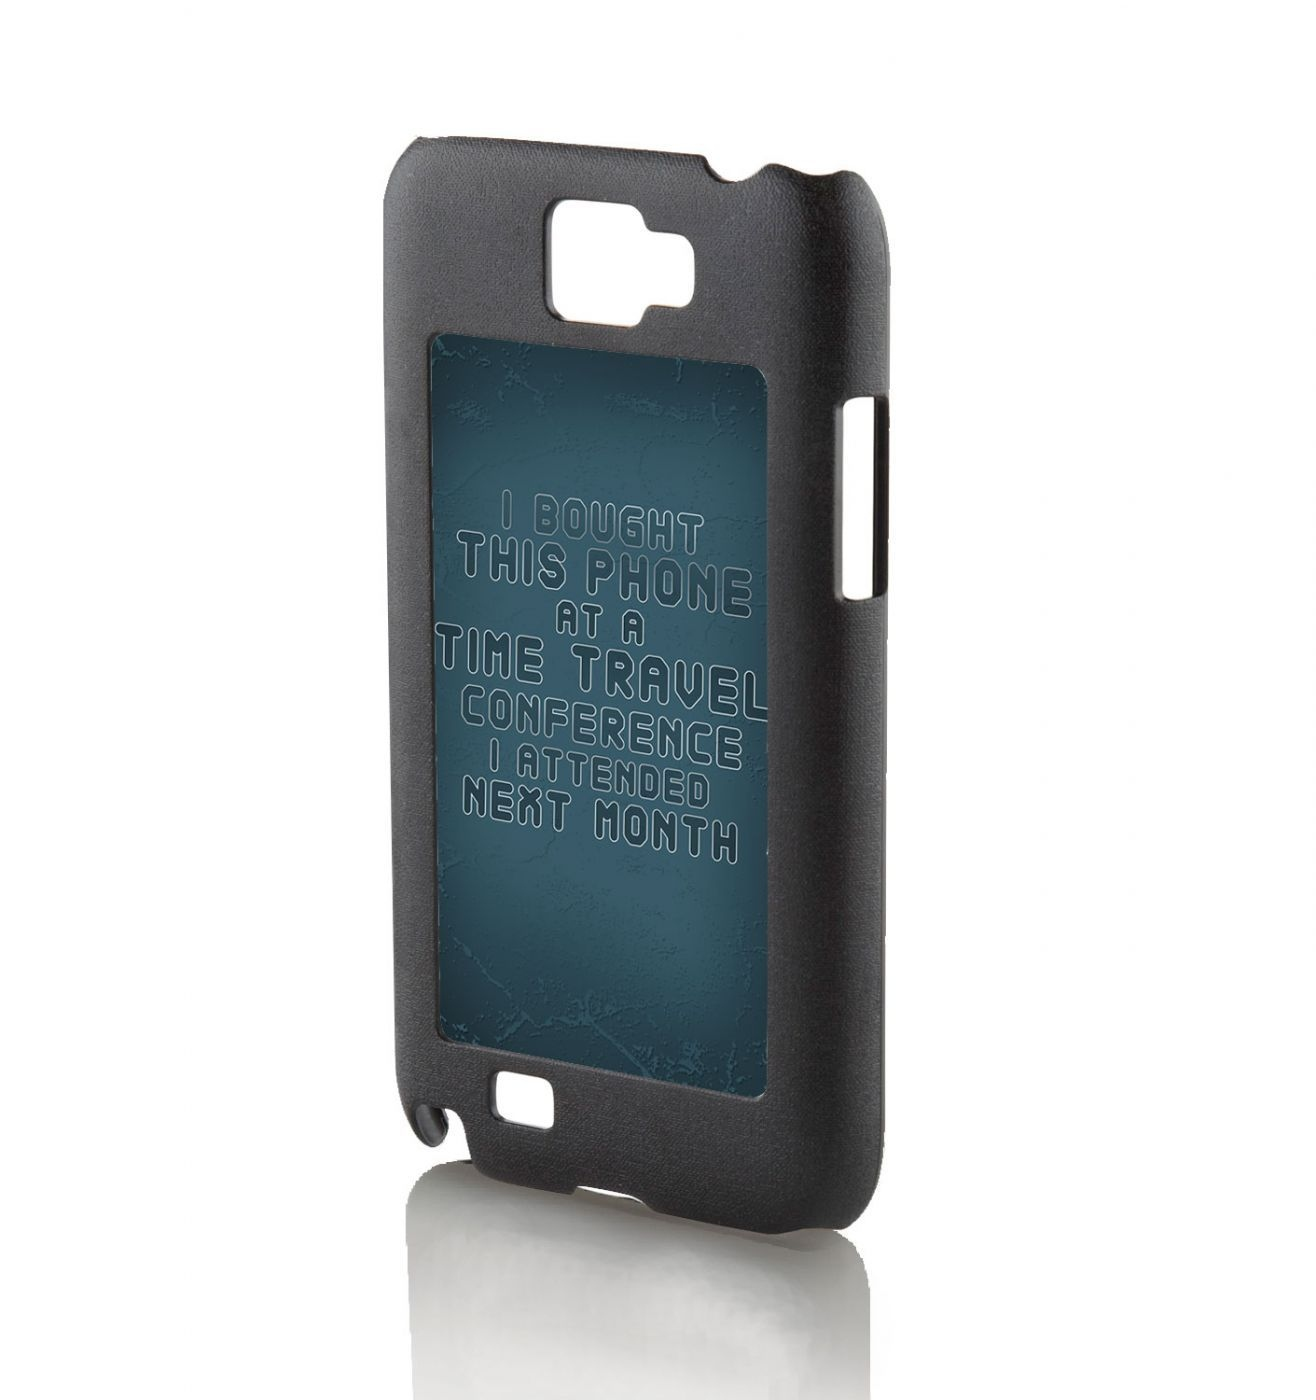 Time Travel Conference Galaxy Note 2 phone case